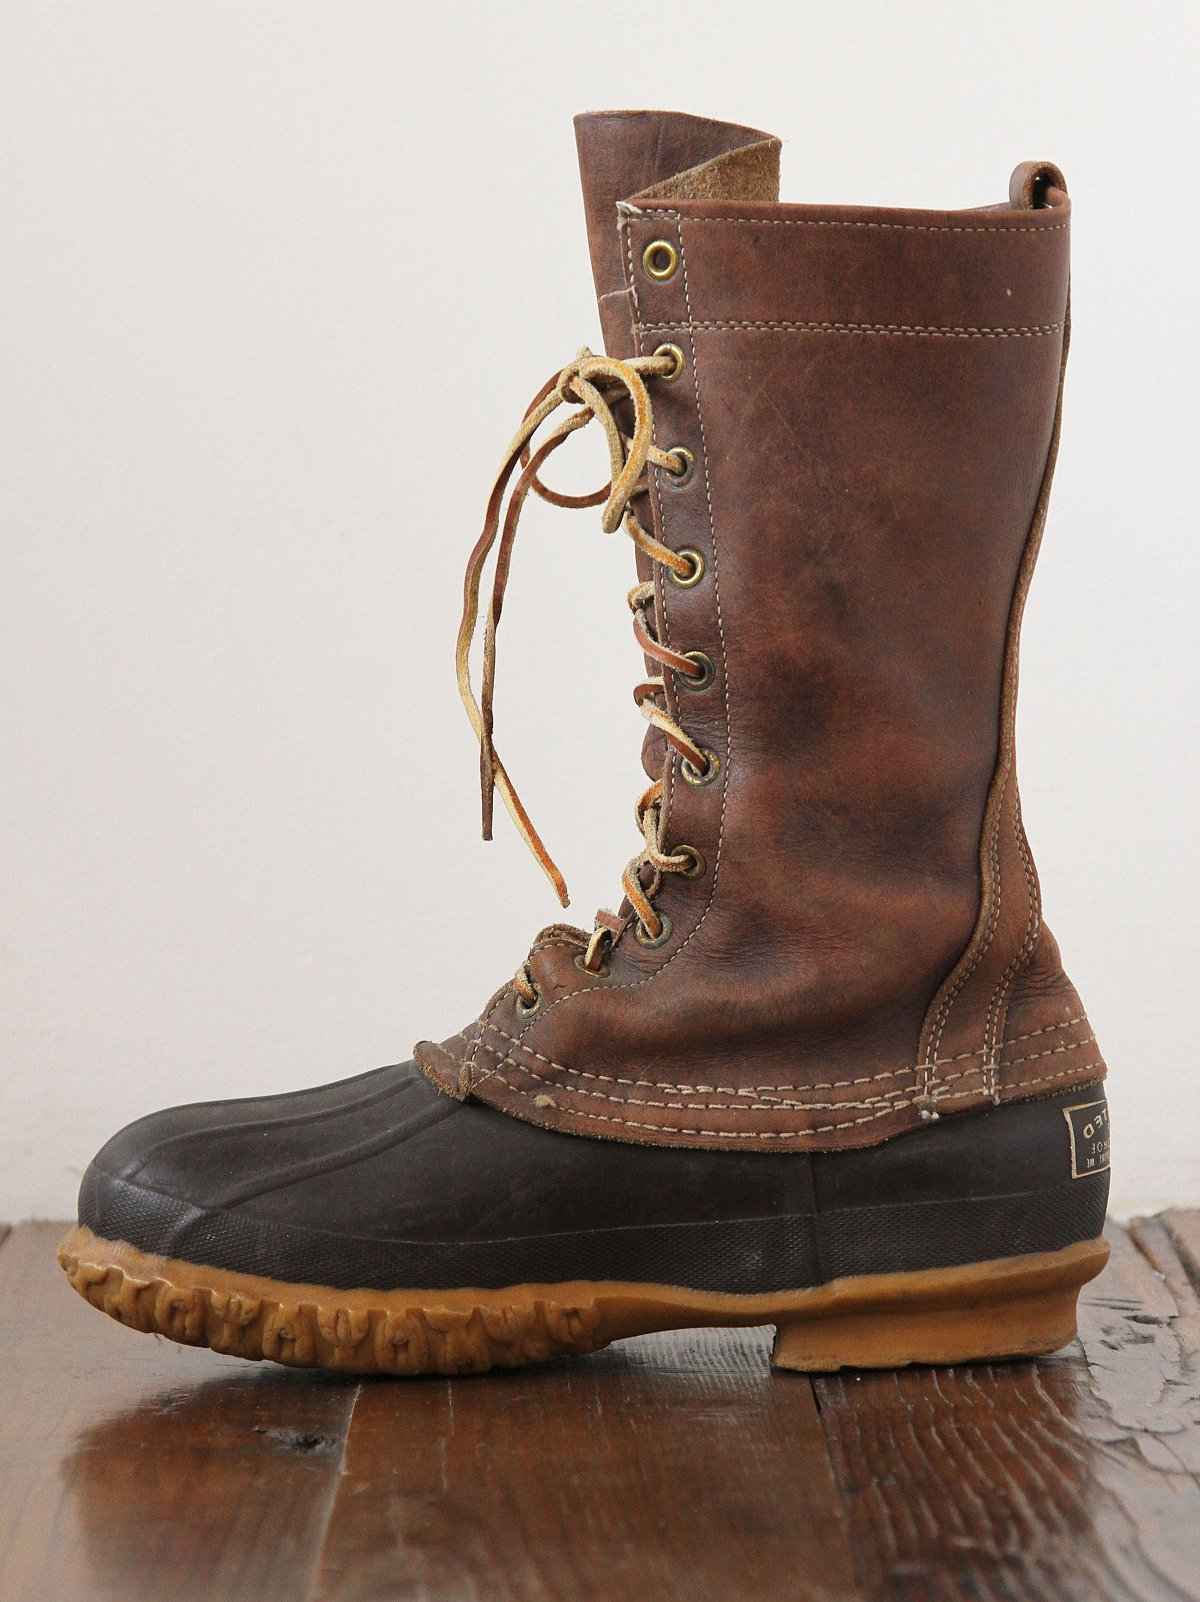 Vintage Leather Duck Boots